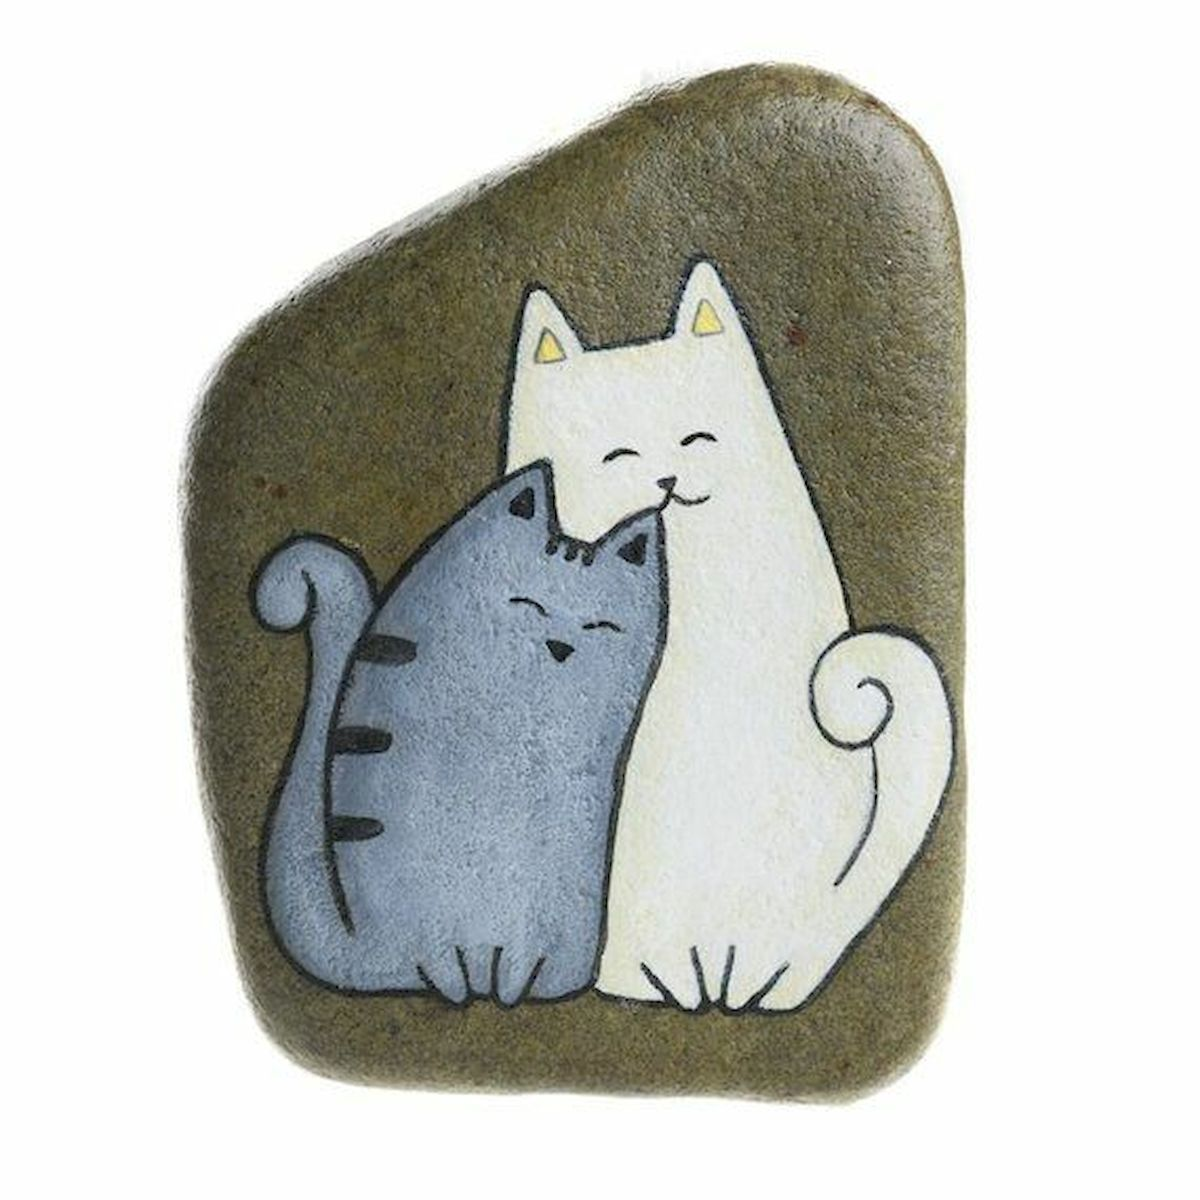 50 Best DIY Painted Rocks Animals Cats for Summer Ideas (49)